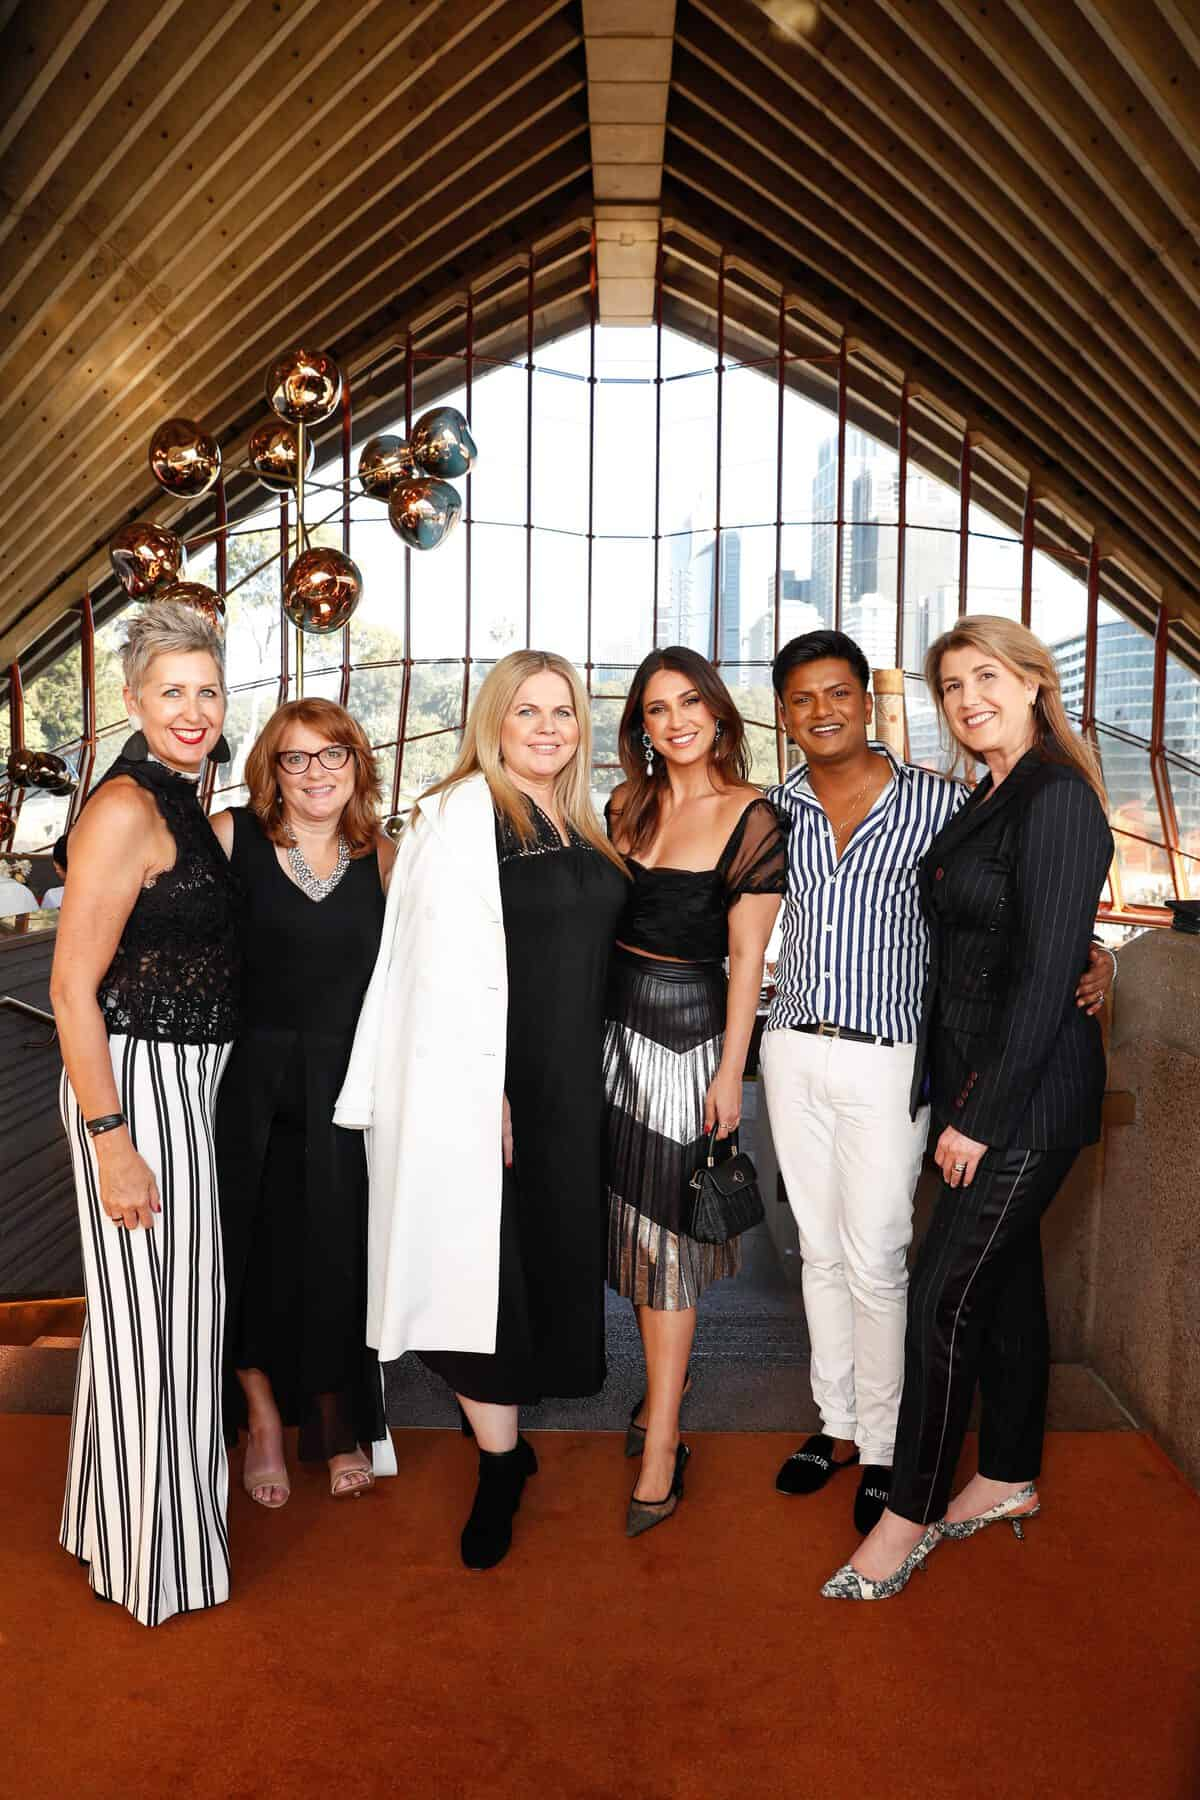 Jude Kingston, Melissa Shea, Vesna Perry, Sonya Mefaddi, Kristian Chase and Mary Centofanti attend the Fashion Mingle Australia VIP Luncheon at Bennelong Restaurant Sydney Opera House on May 14, 2019 in Sydney, Australia. (Photo by Hanna Lassen/Getty Images for Fashion Mingle)